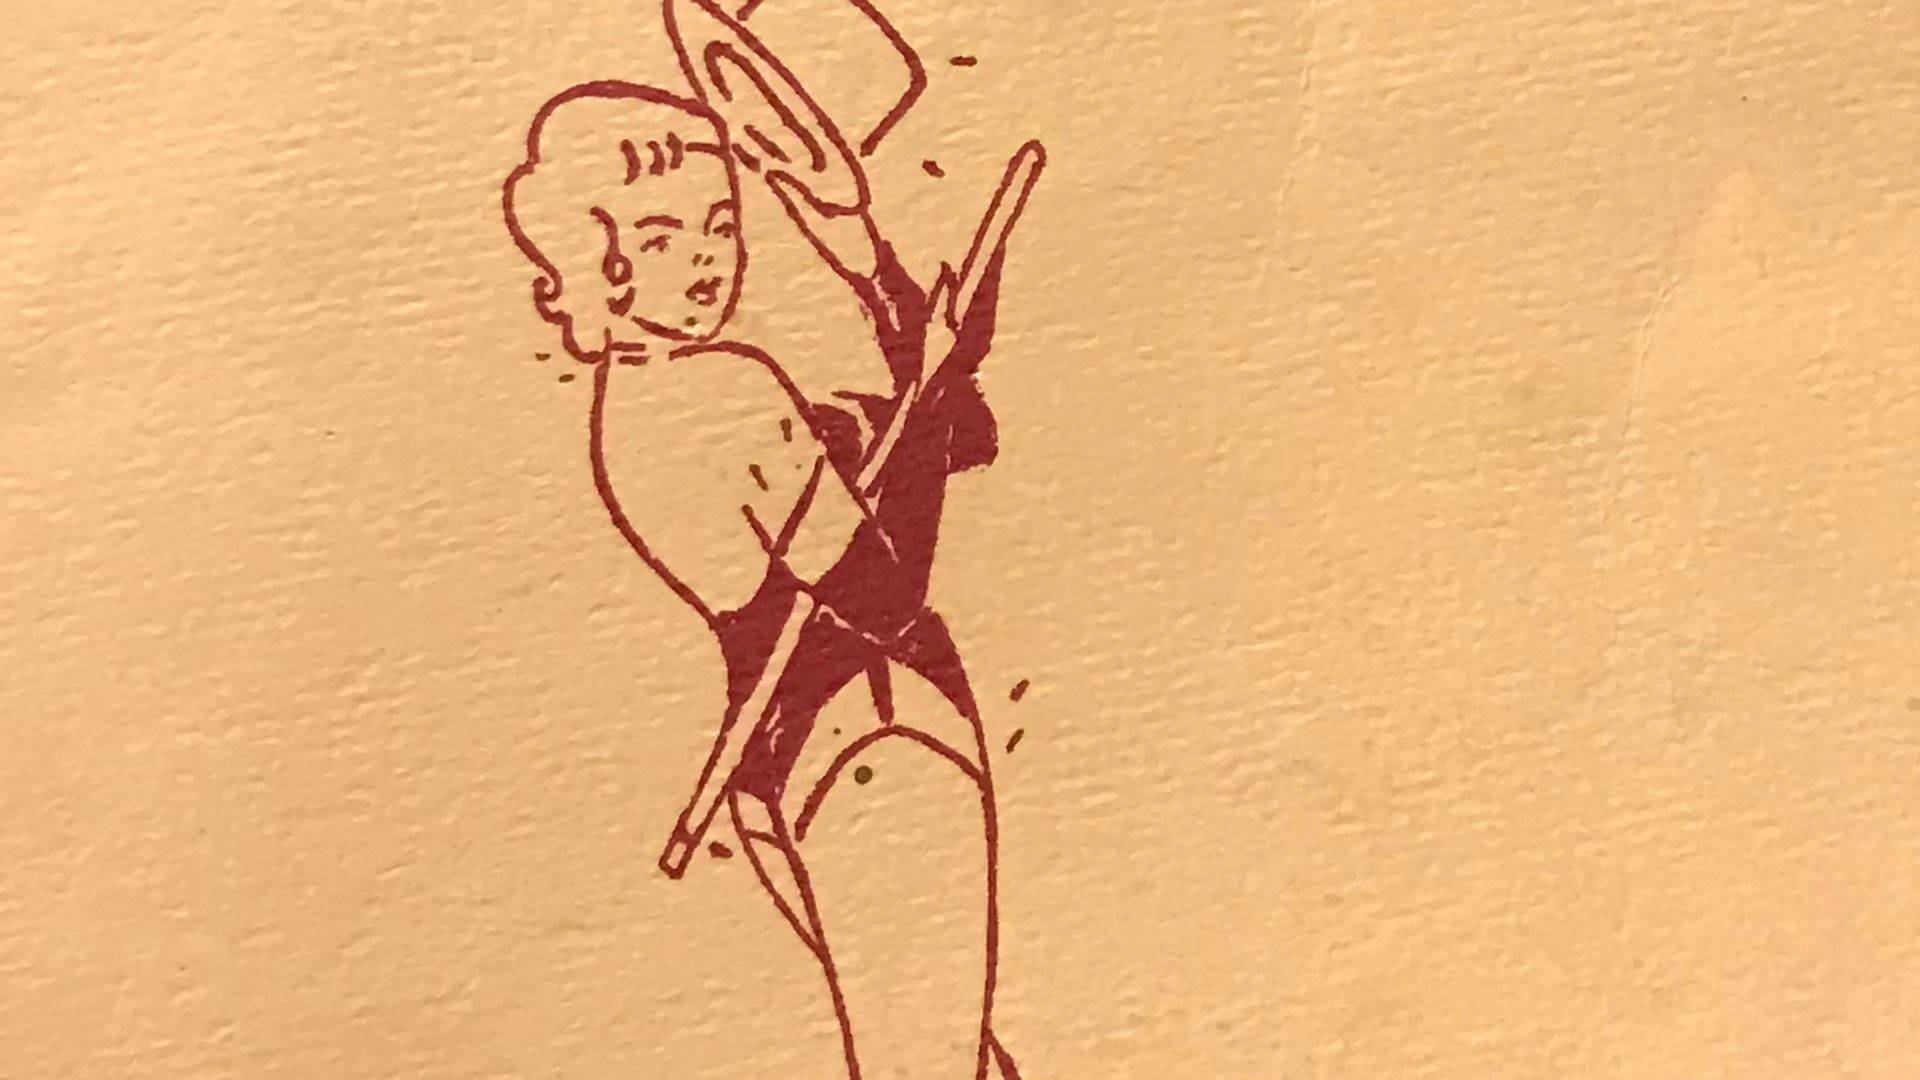 Detail from one of Rita Cecaci's Raiderettes programs from 1962. Pendarvis Harshaw